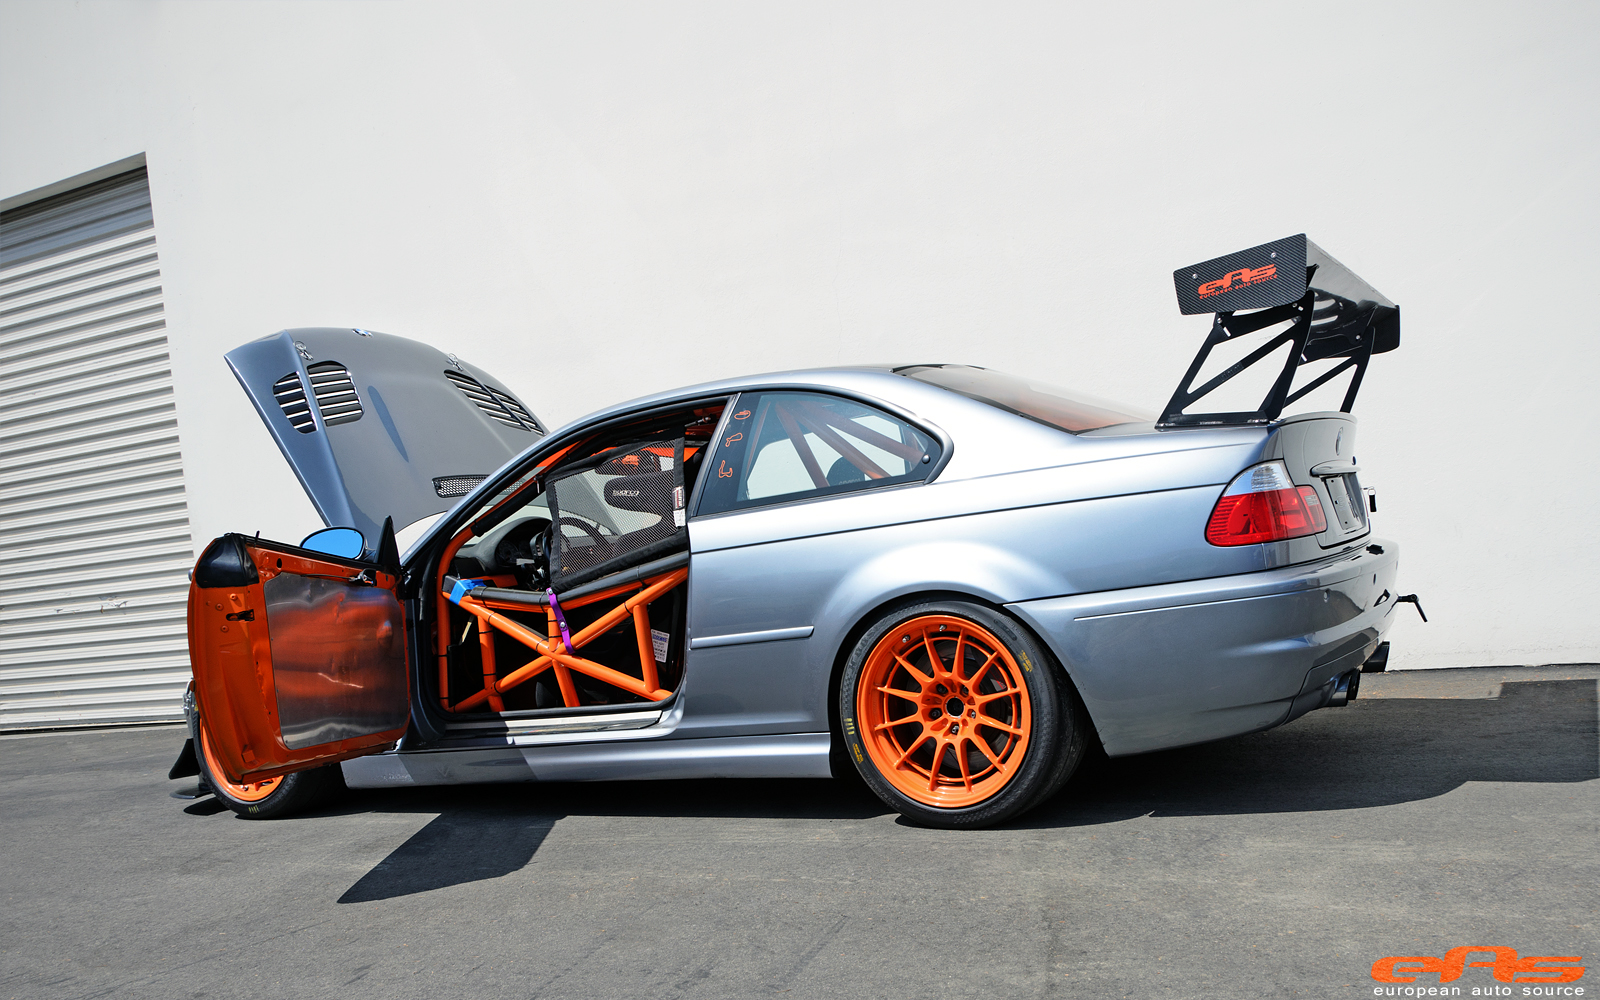 e46 m3 track machine gets supercharged bmw performance parts services. Black Bedroom Furniture Sets. Home Design Ideas